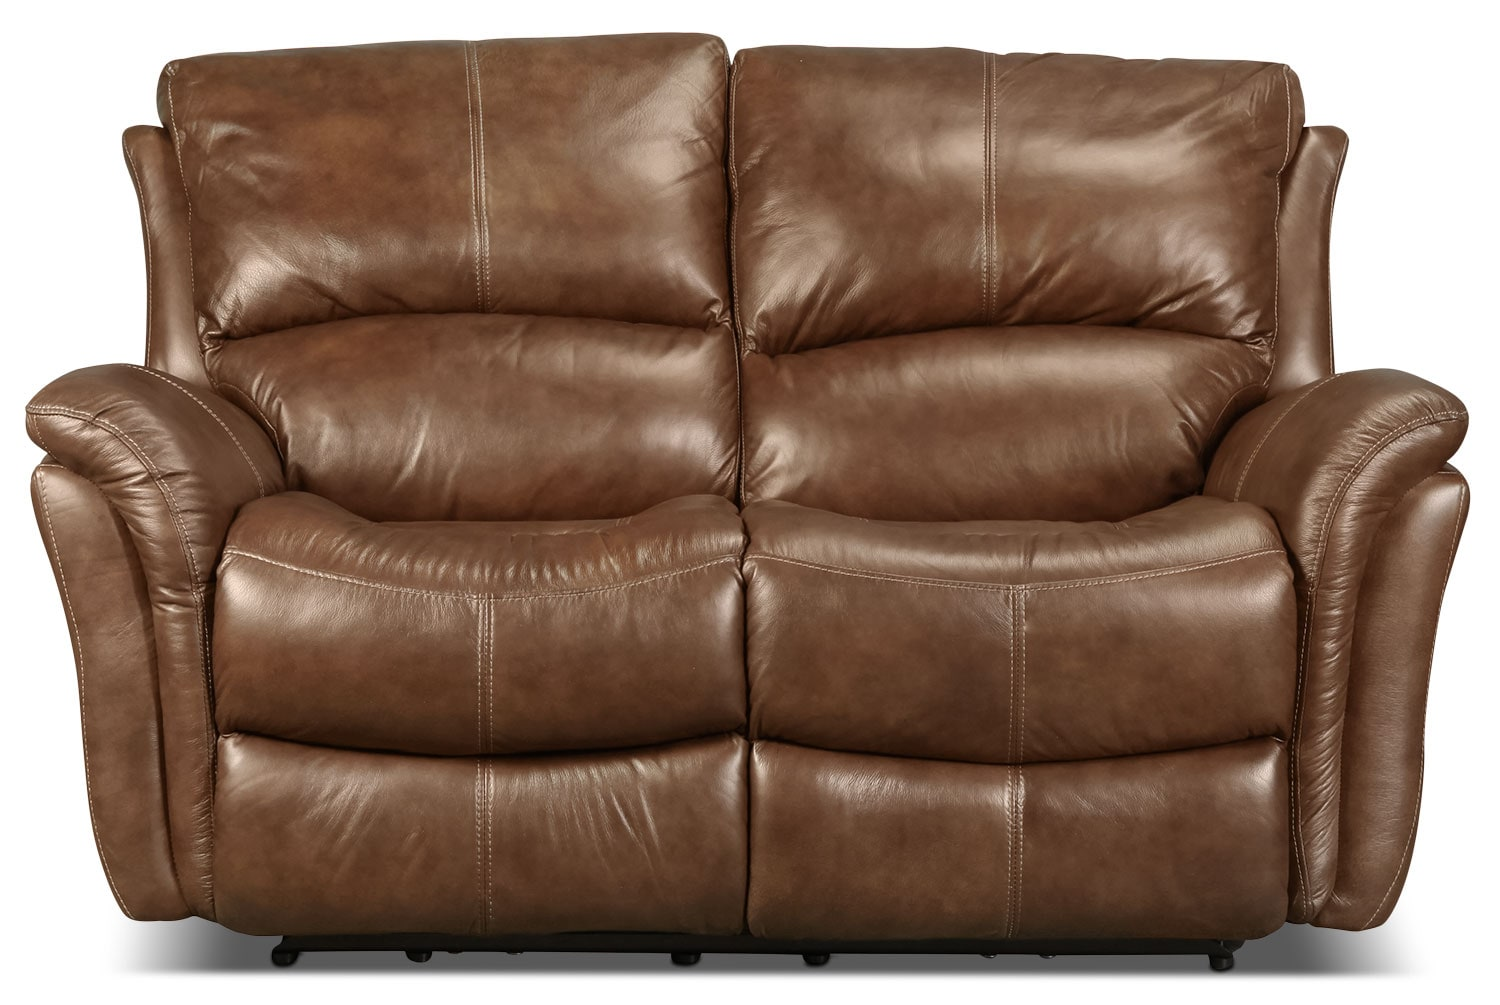 Griffin Power Reclining Loveseat - Brown